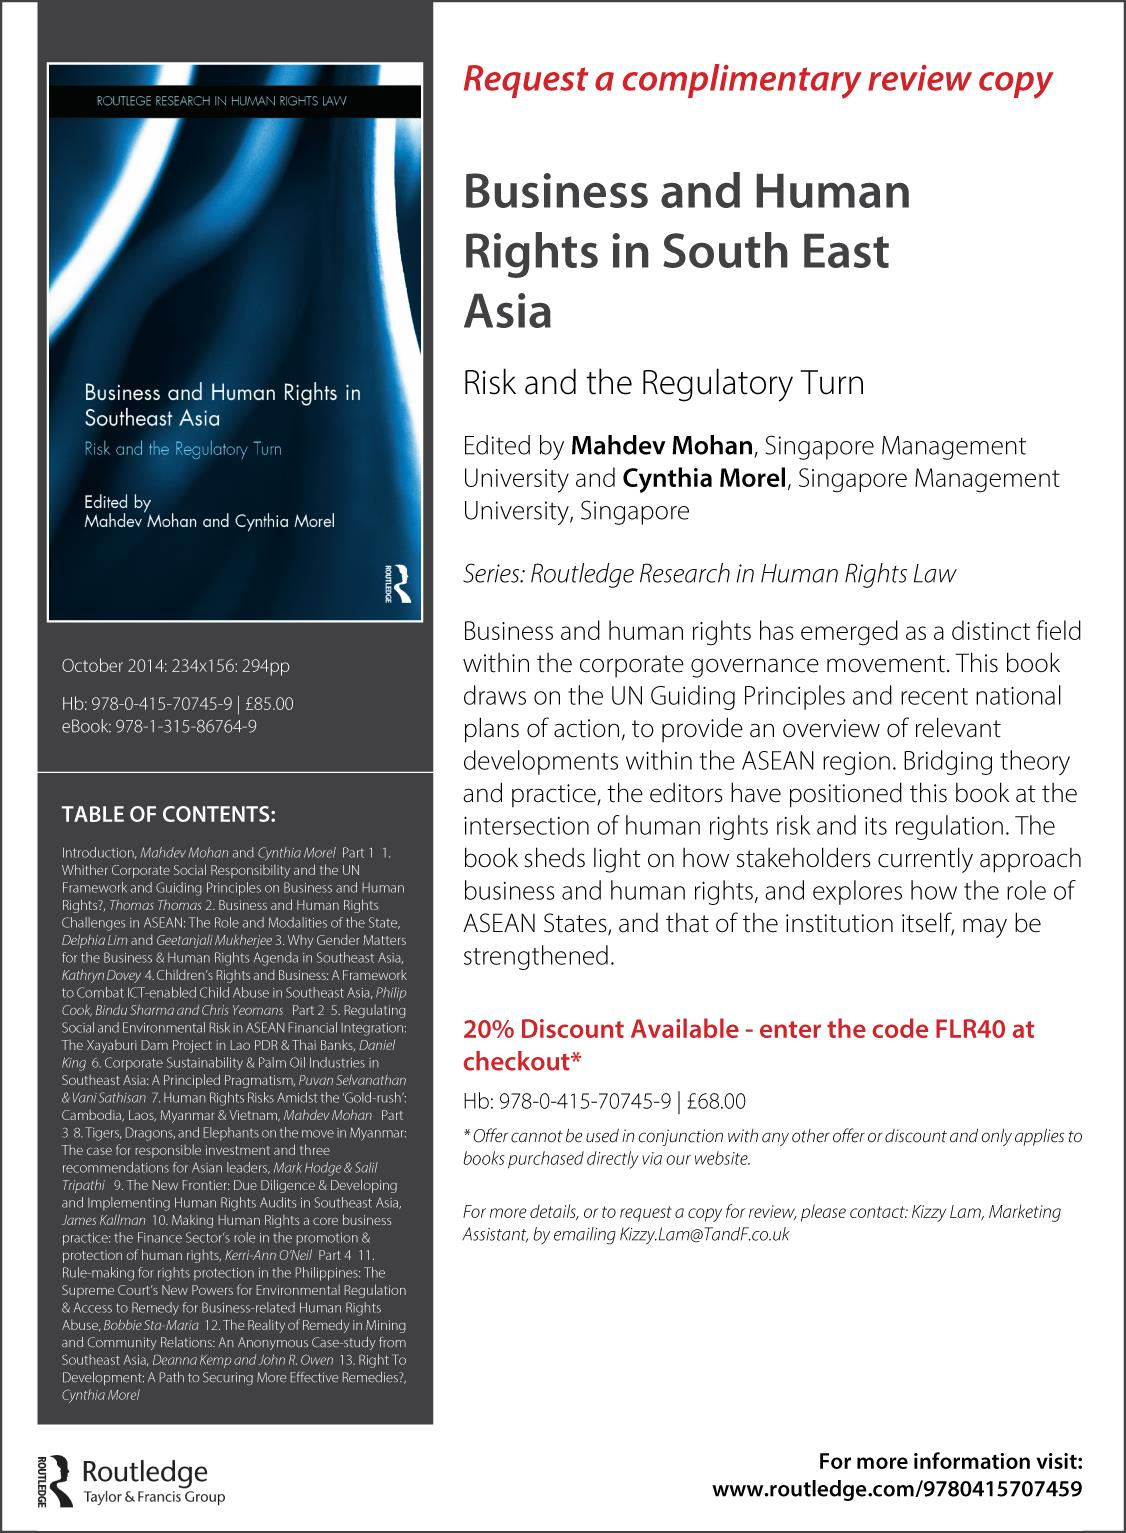 Business and Human Rights in South East Asia